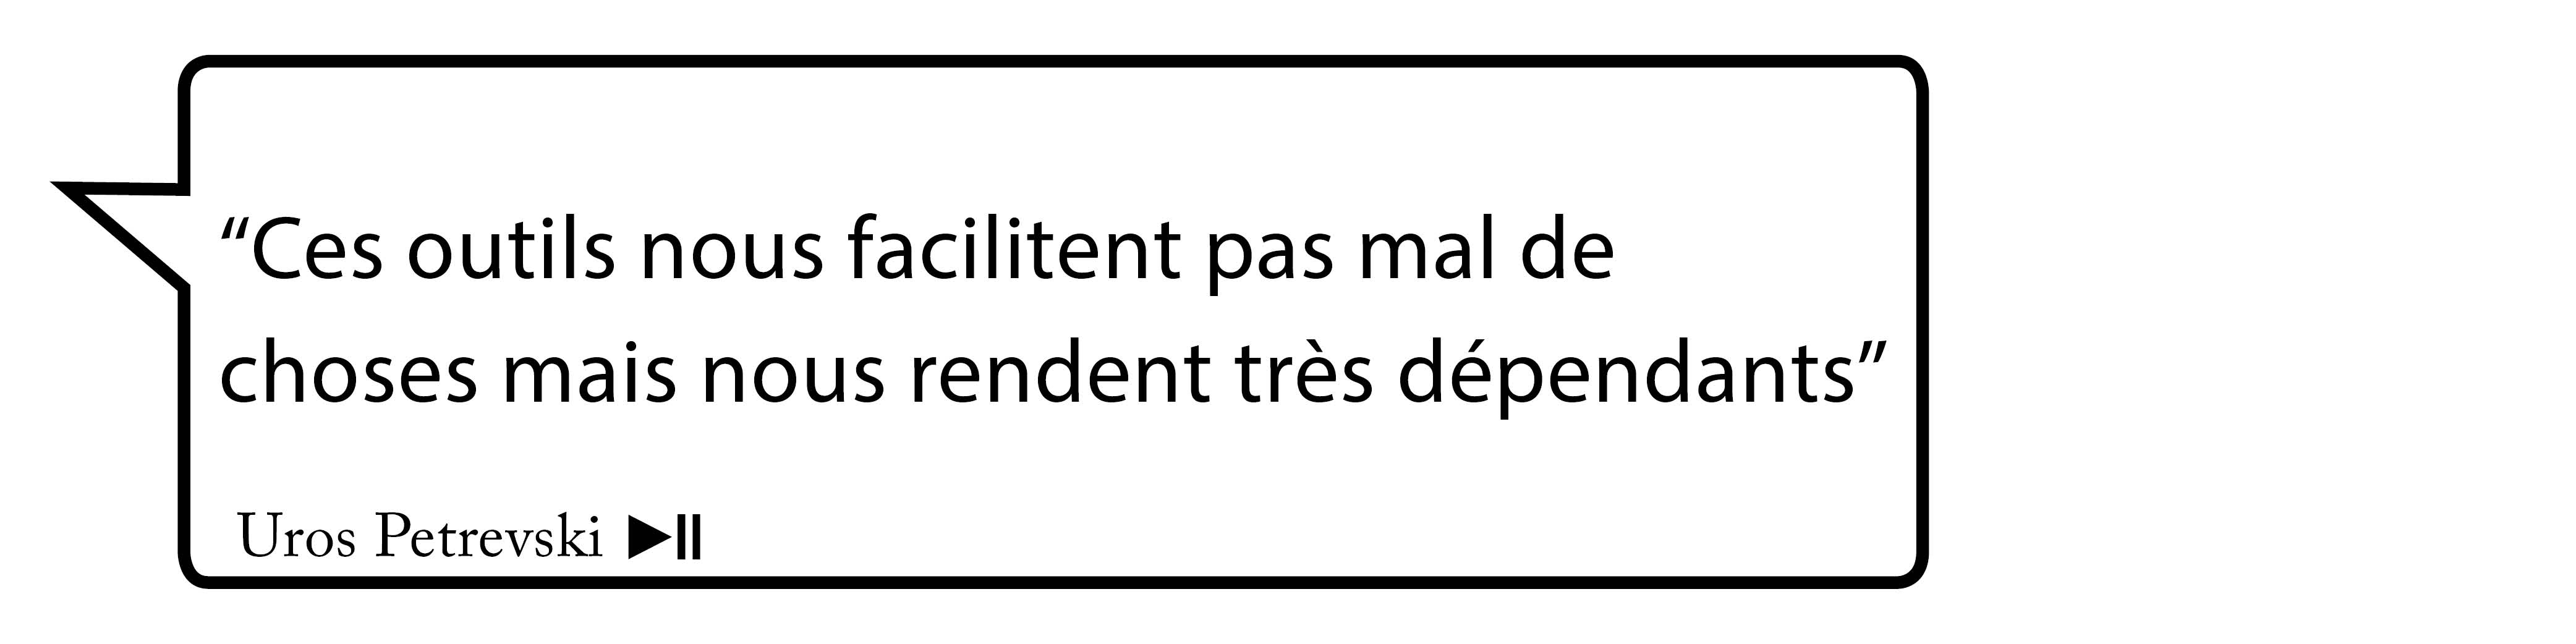 citationsblog2